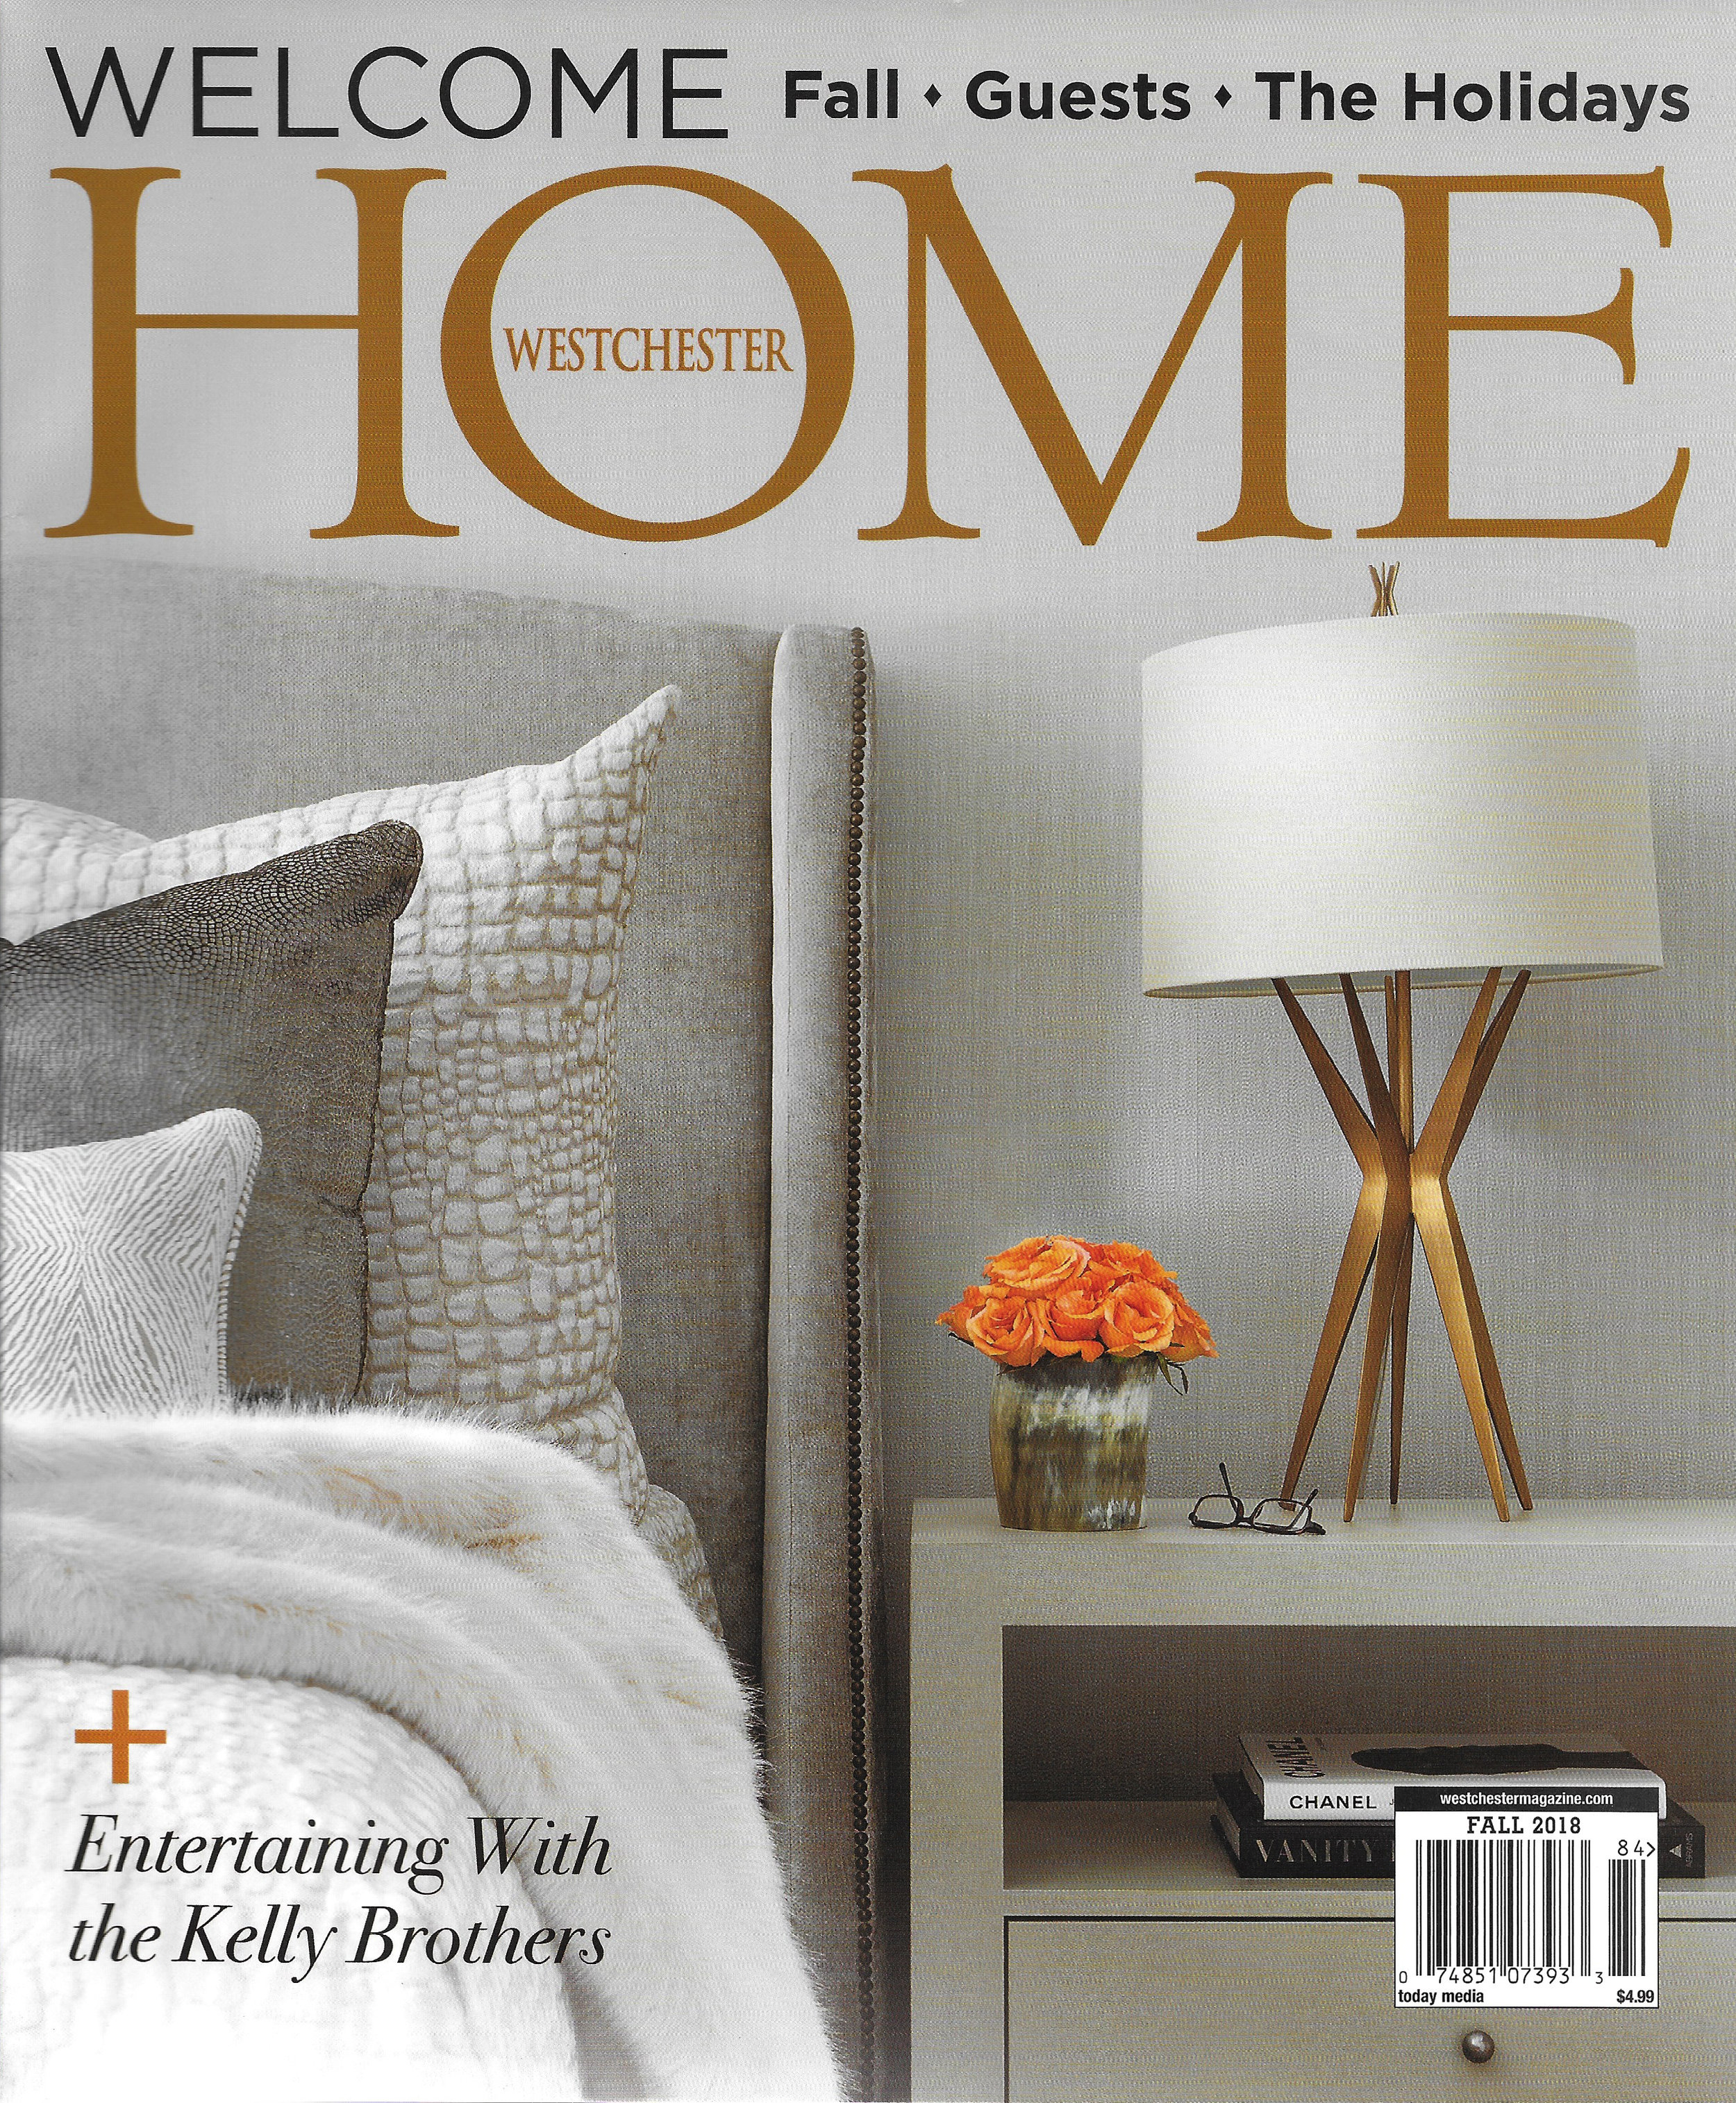 Westchester Home Fall 2018 - Cover 1.jpg